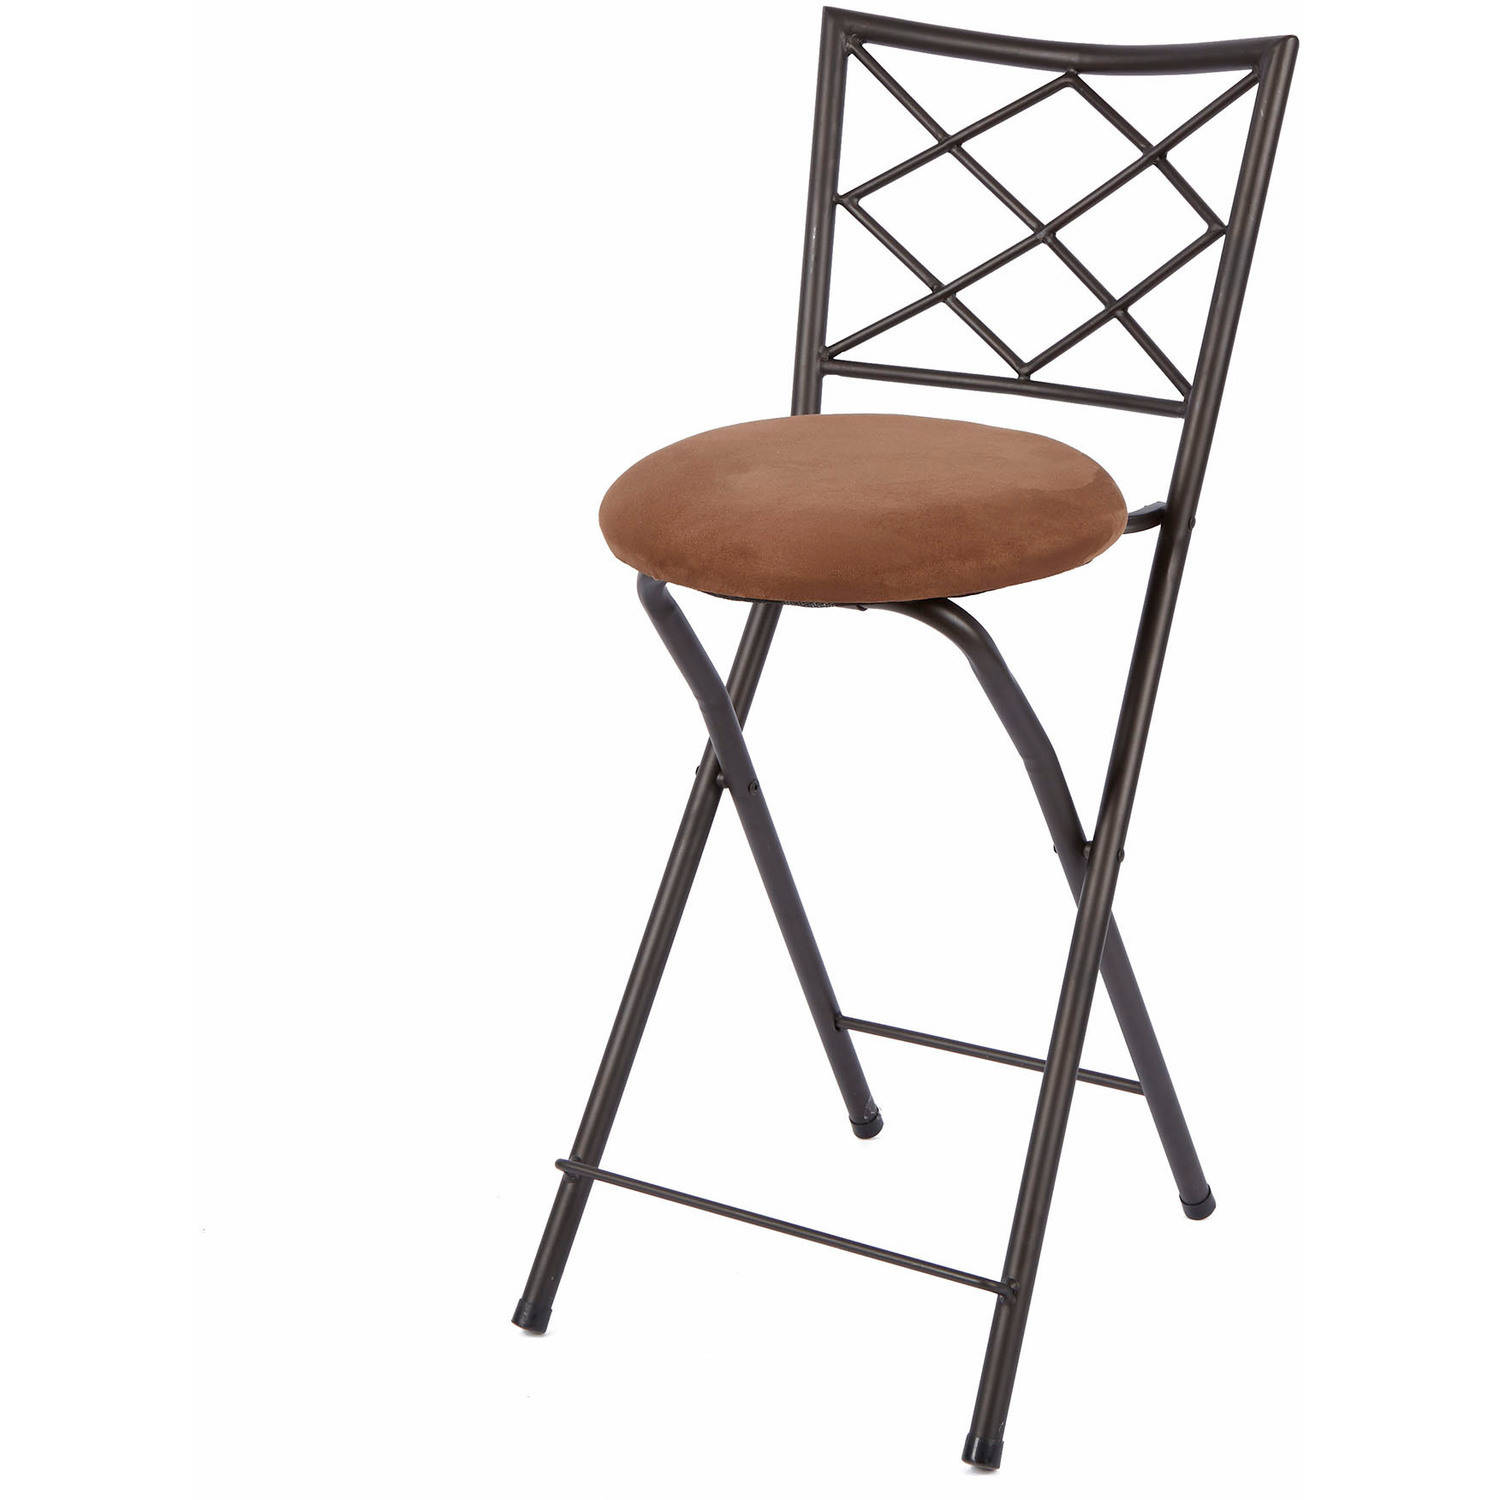 folding bar stool chairs outdoor rocking walmart diamond x back 24 counter height bronze multiple colors com